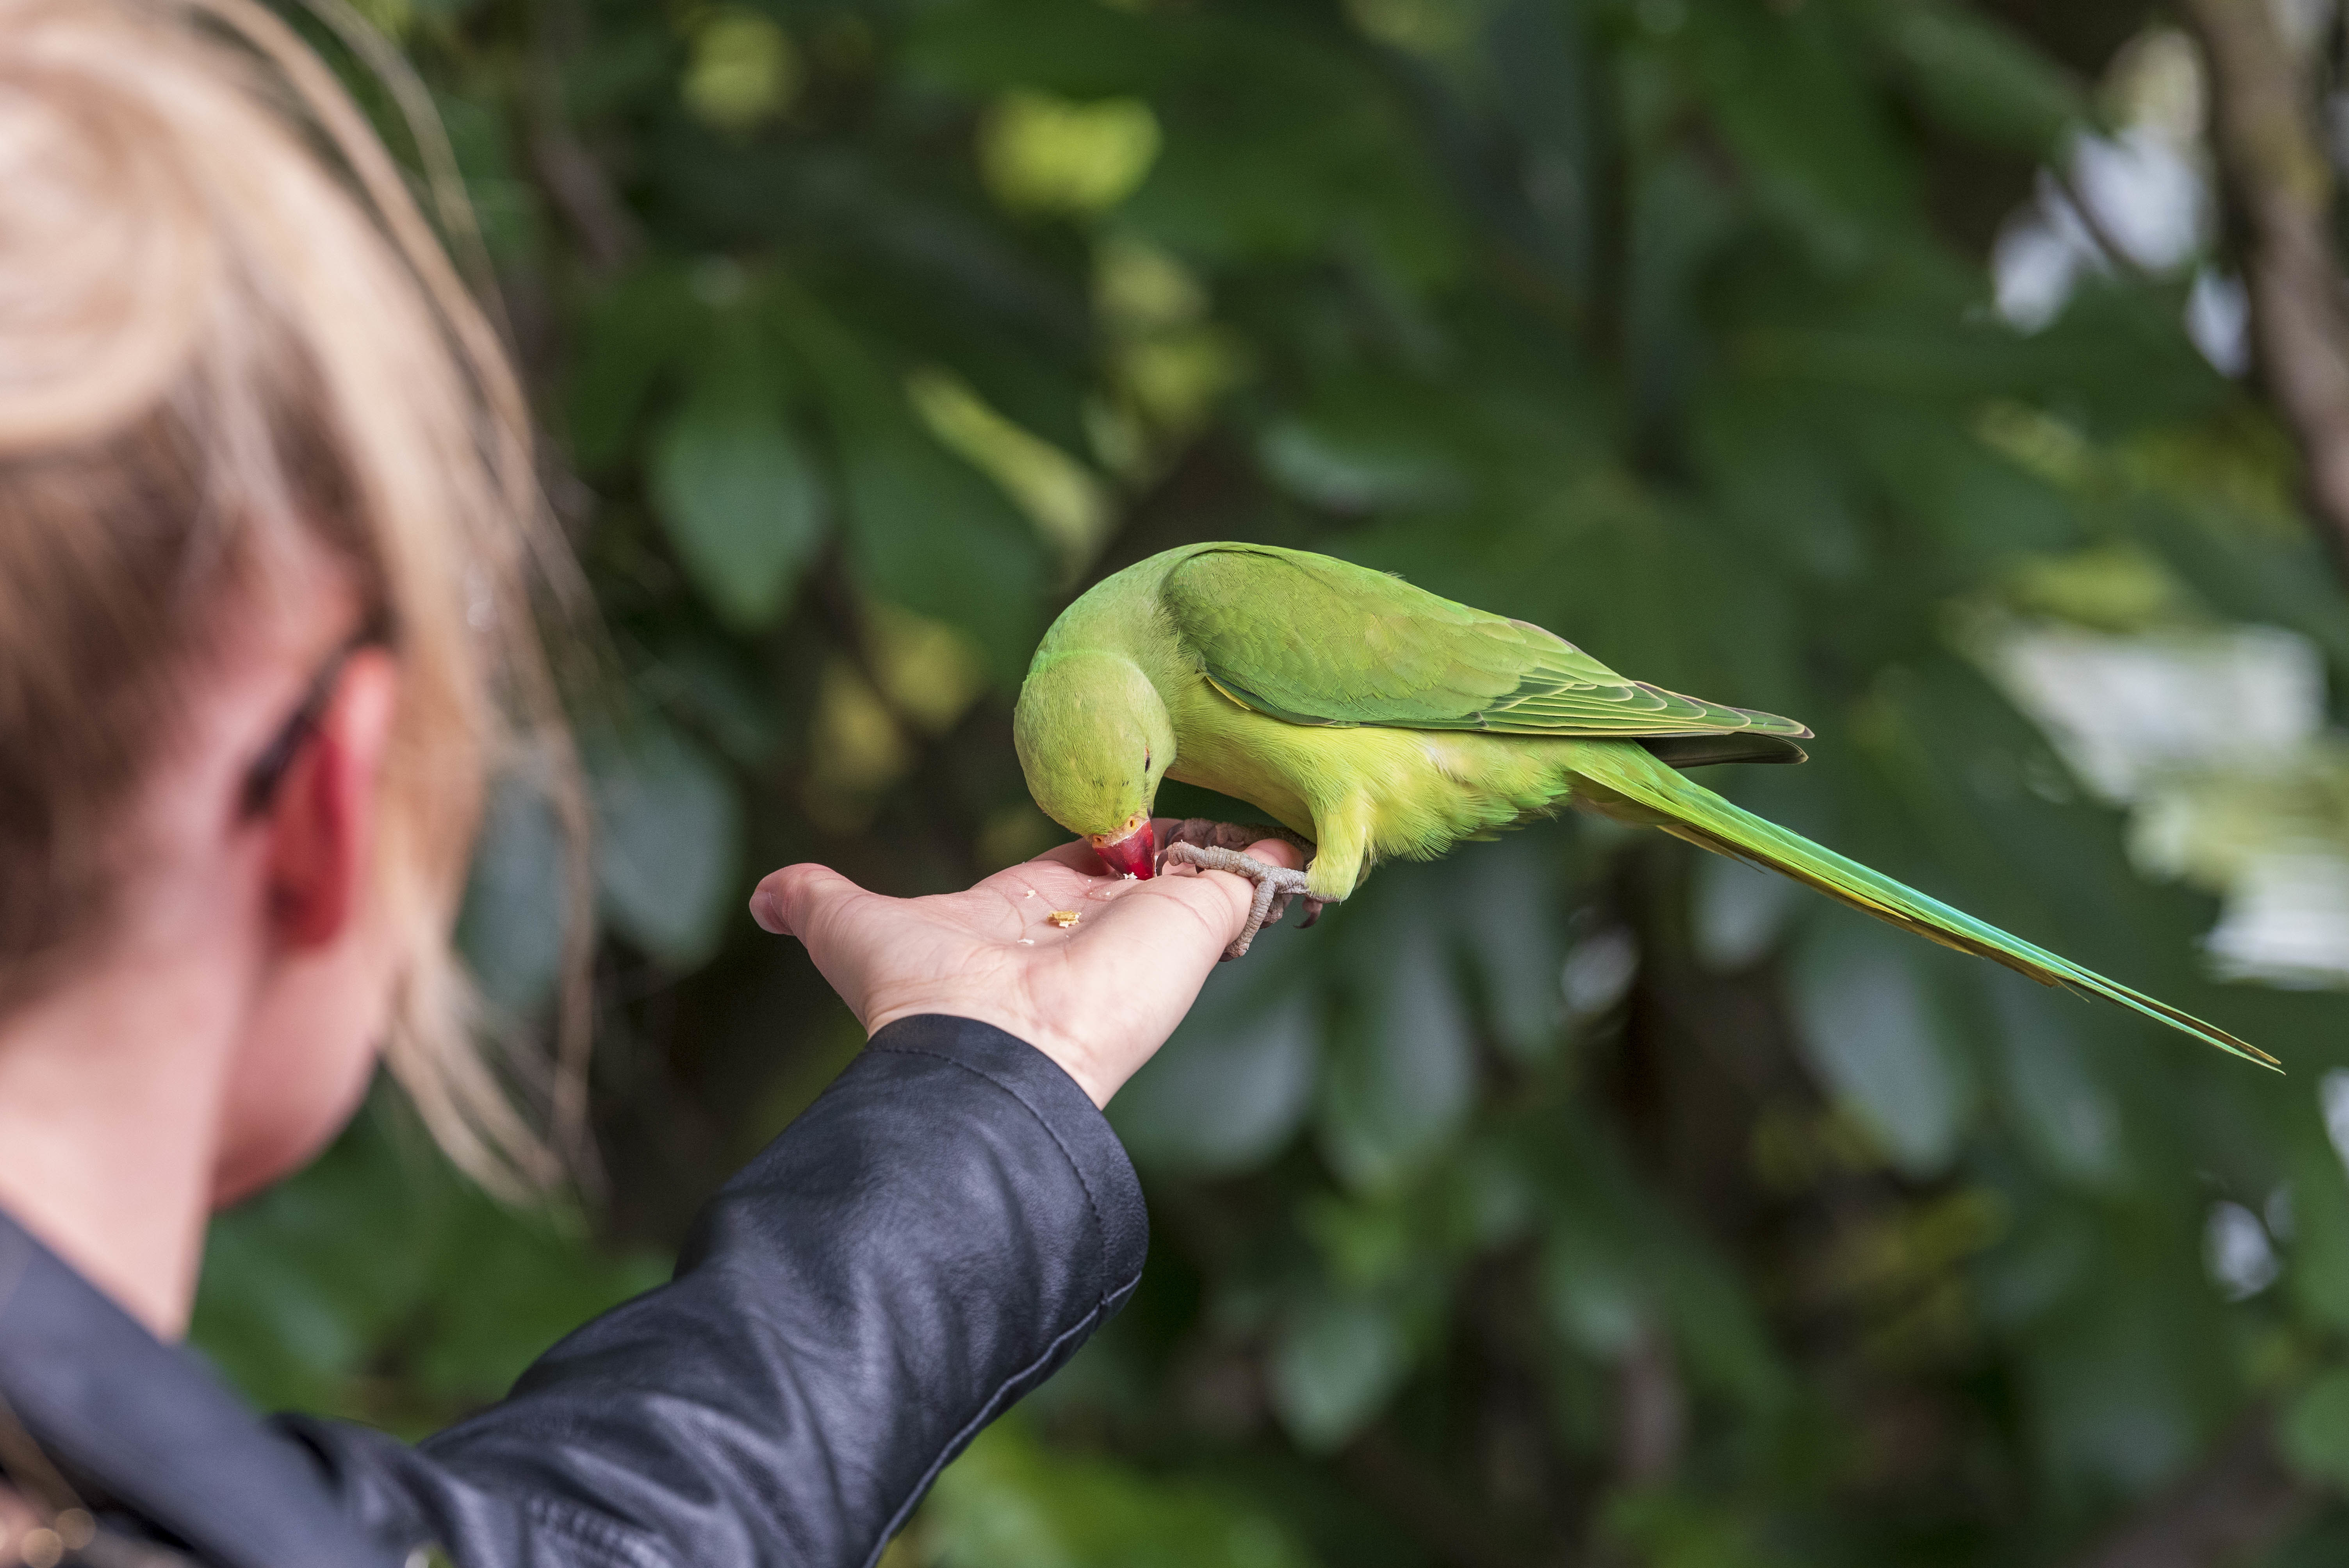 A woman feeds a Rose-ringed Parakeet on her outstretched arm at St James Park. (Photo by Dave Rushen / SOPA Images/Sipa USA)